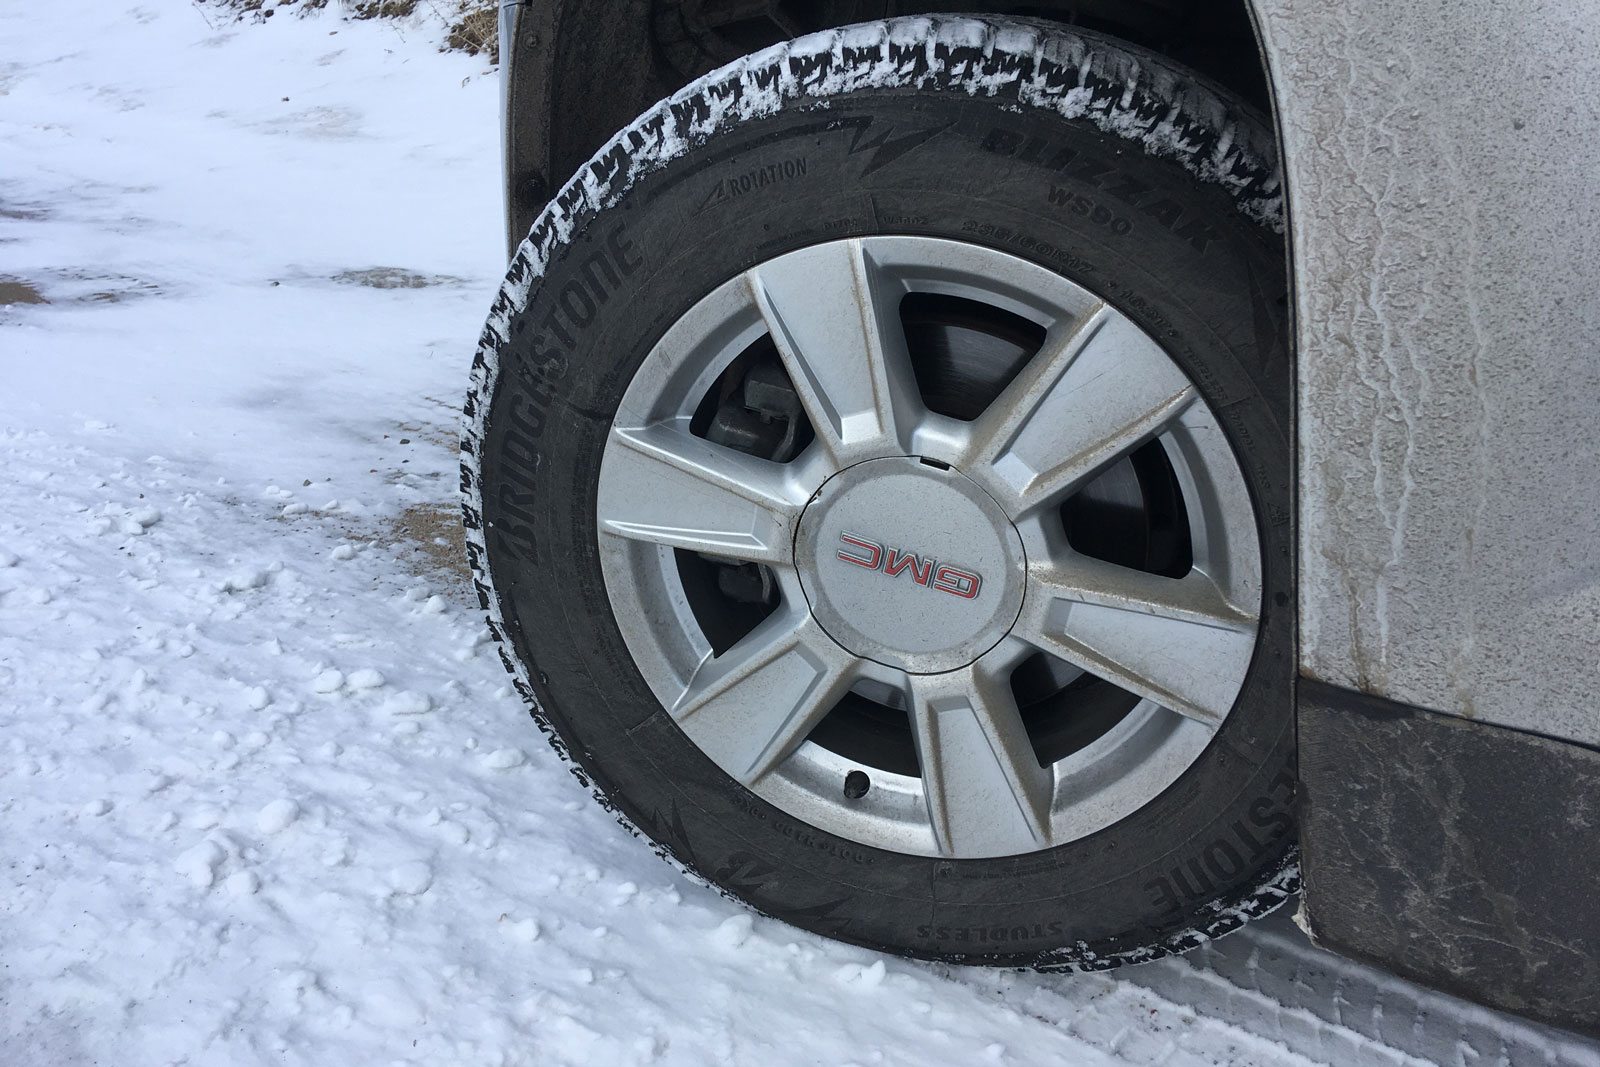 WS90 tires